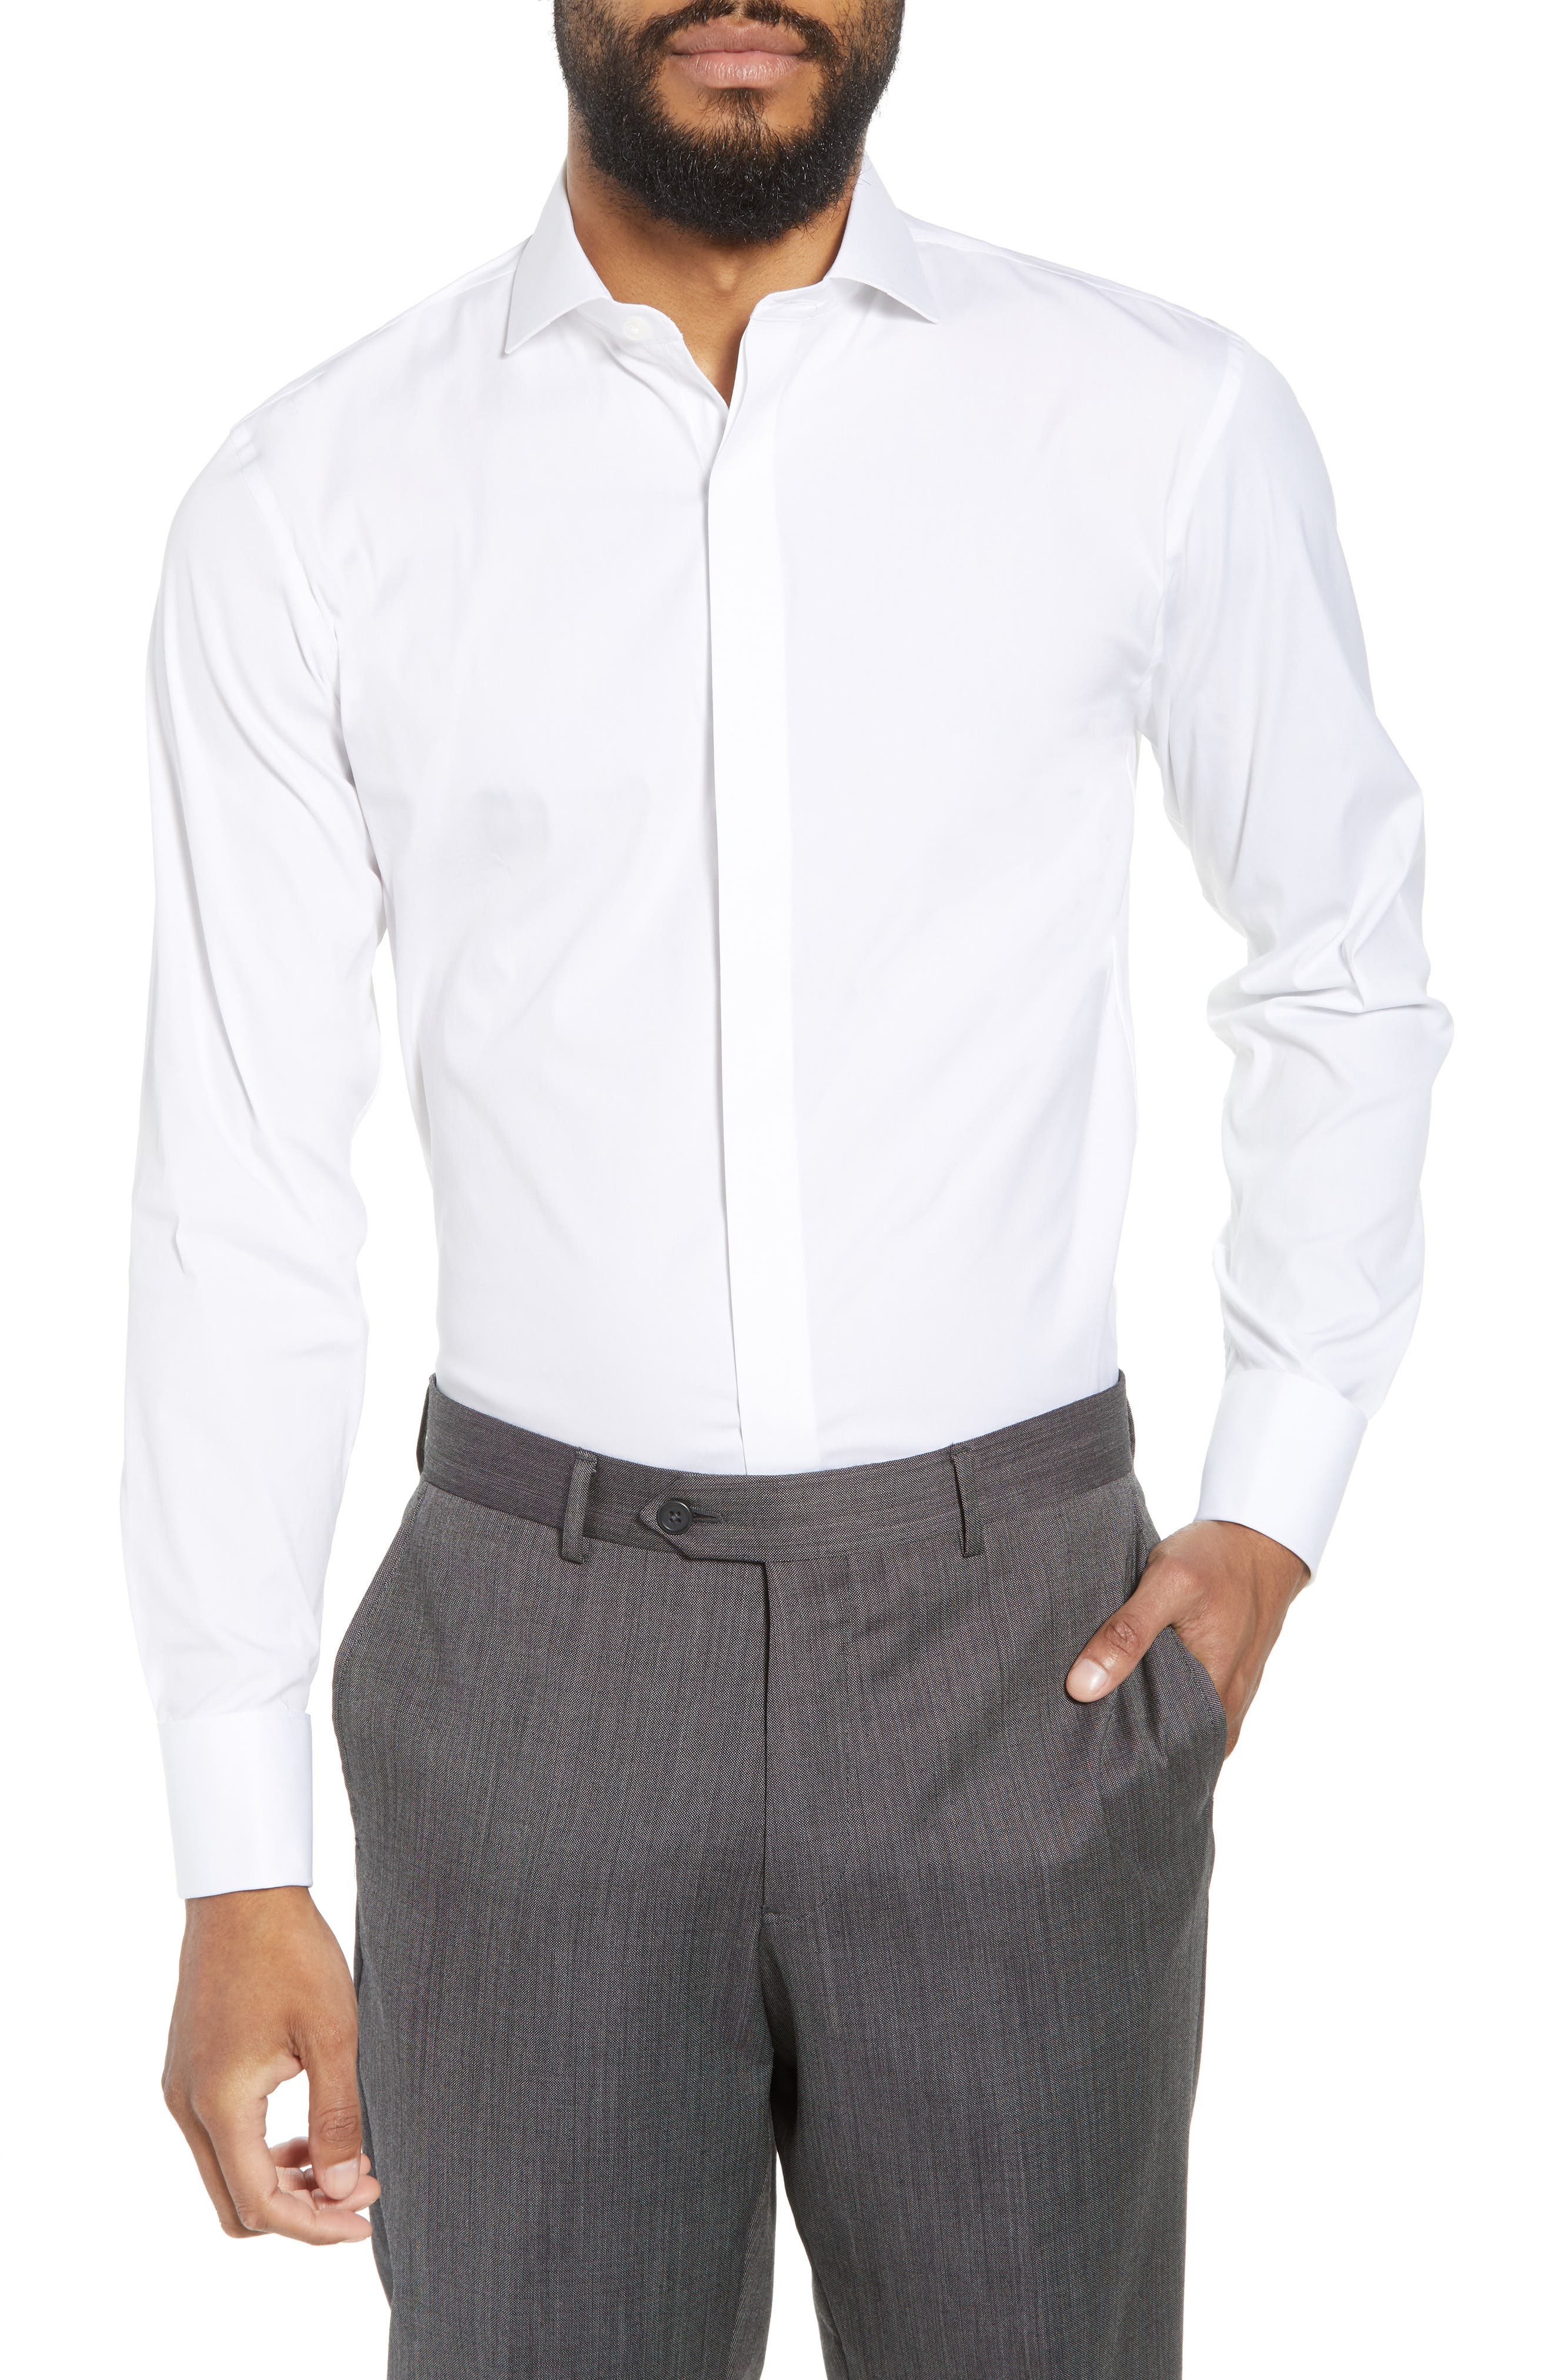 Capstone Stretch Slim Fit Tuxedo Shirt,                             Main thumbnail 1, color,                             WHITE